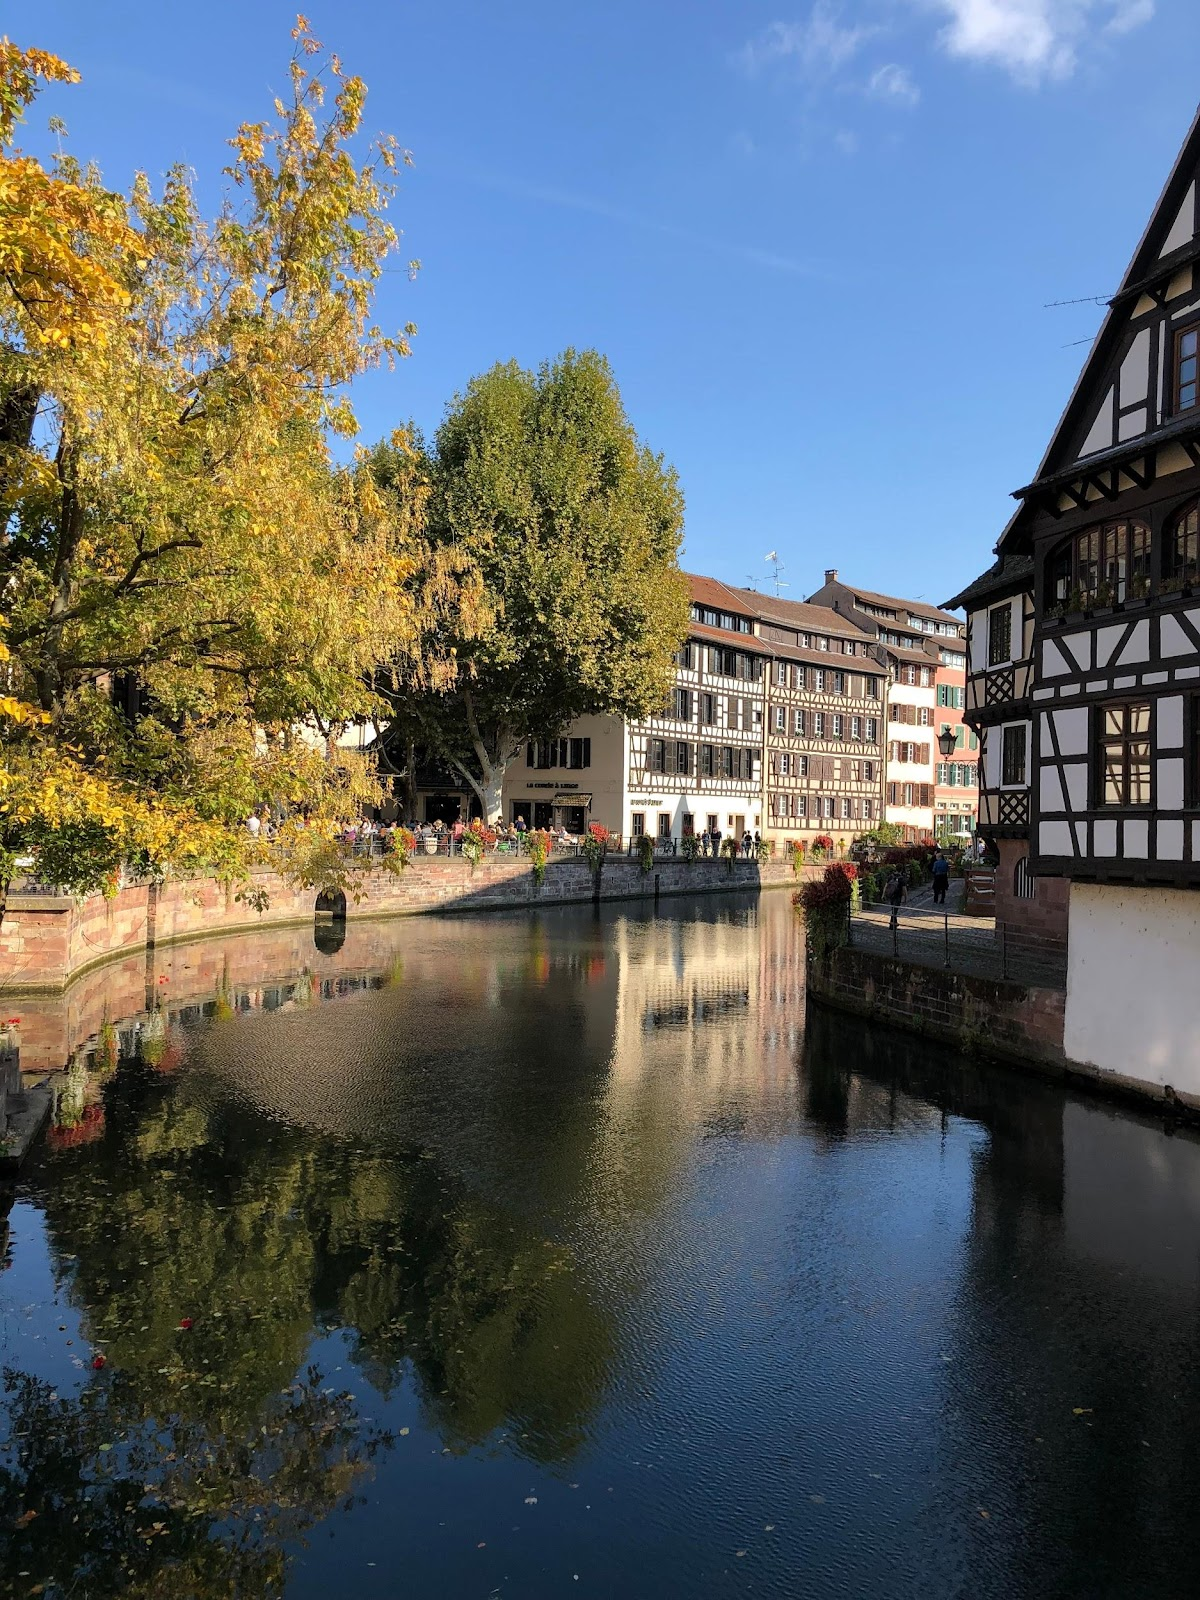 strasbourg medieval old town traditional wooden and white buildings near calm rhein river and yellow trees in france. See Strasbourg during our Black forest Germany road trip itinerary.